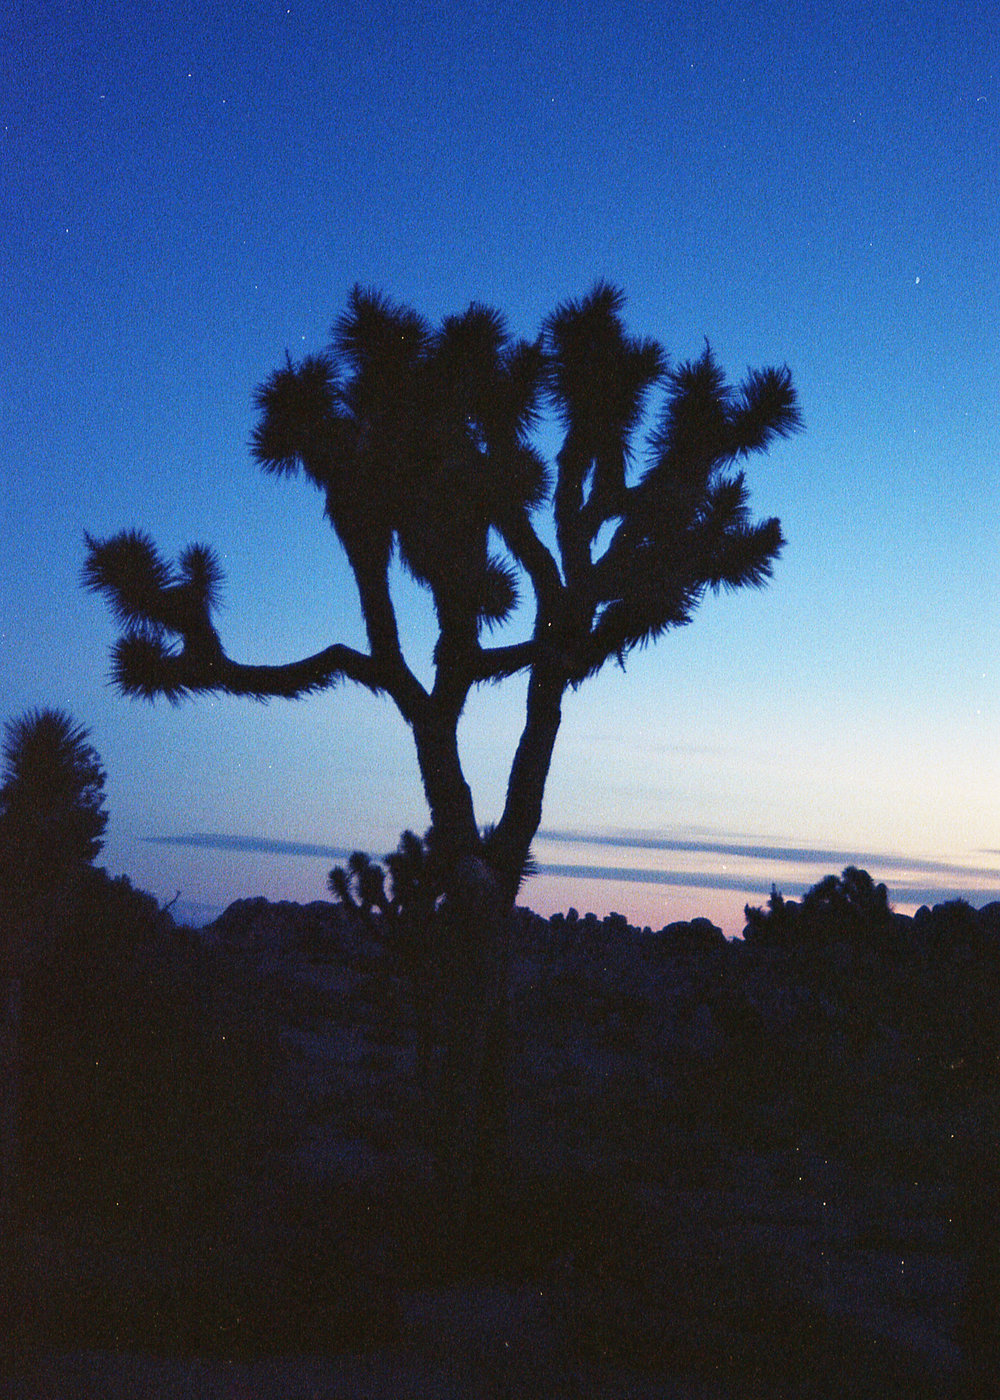 Inspired by my recent western film kick, Avrie and I lit out the first week of January, heading for the desert. My main goal was to soak up the vast land of shrubs and jack rabbits in Joshua Tree National Park. All summer long, Avrie and I watched cowboy flicks like  Tombstone, Lonesome Dove, Open Range, Dances With Wolves,  and the like. When I was a kid, I used to fight my dad over the remote in hopes to turn off his beloved black and white OG western films. At the time I hated it, but growing up around them I slowly learned to appreciate them. I've even seen a midget western from the 60s. All cowboys were 4 feet tall, and yes... they used miniature horses.